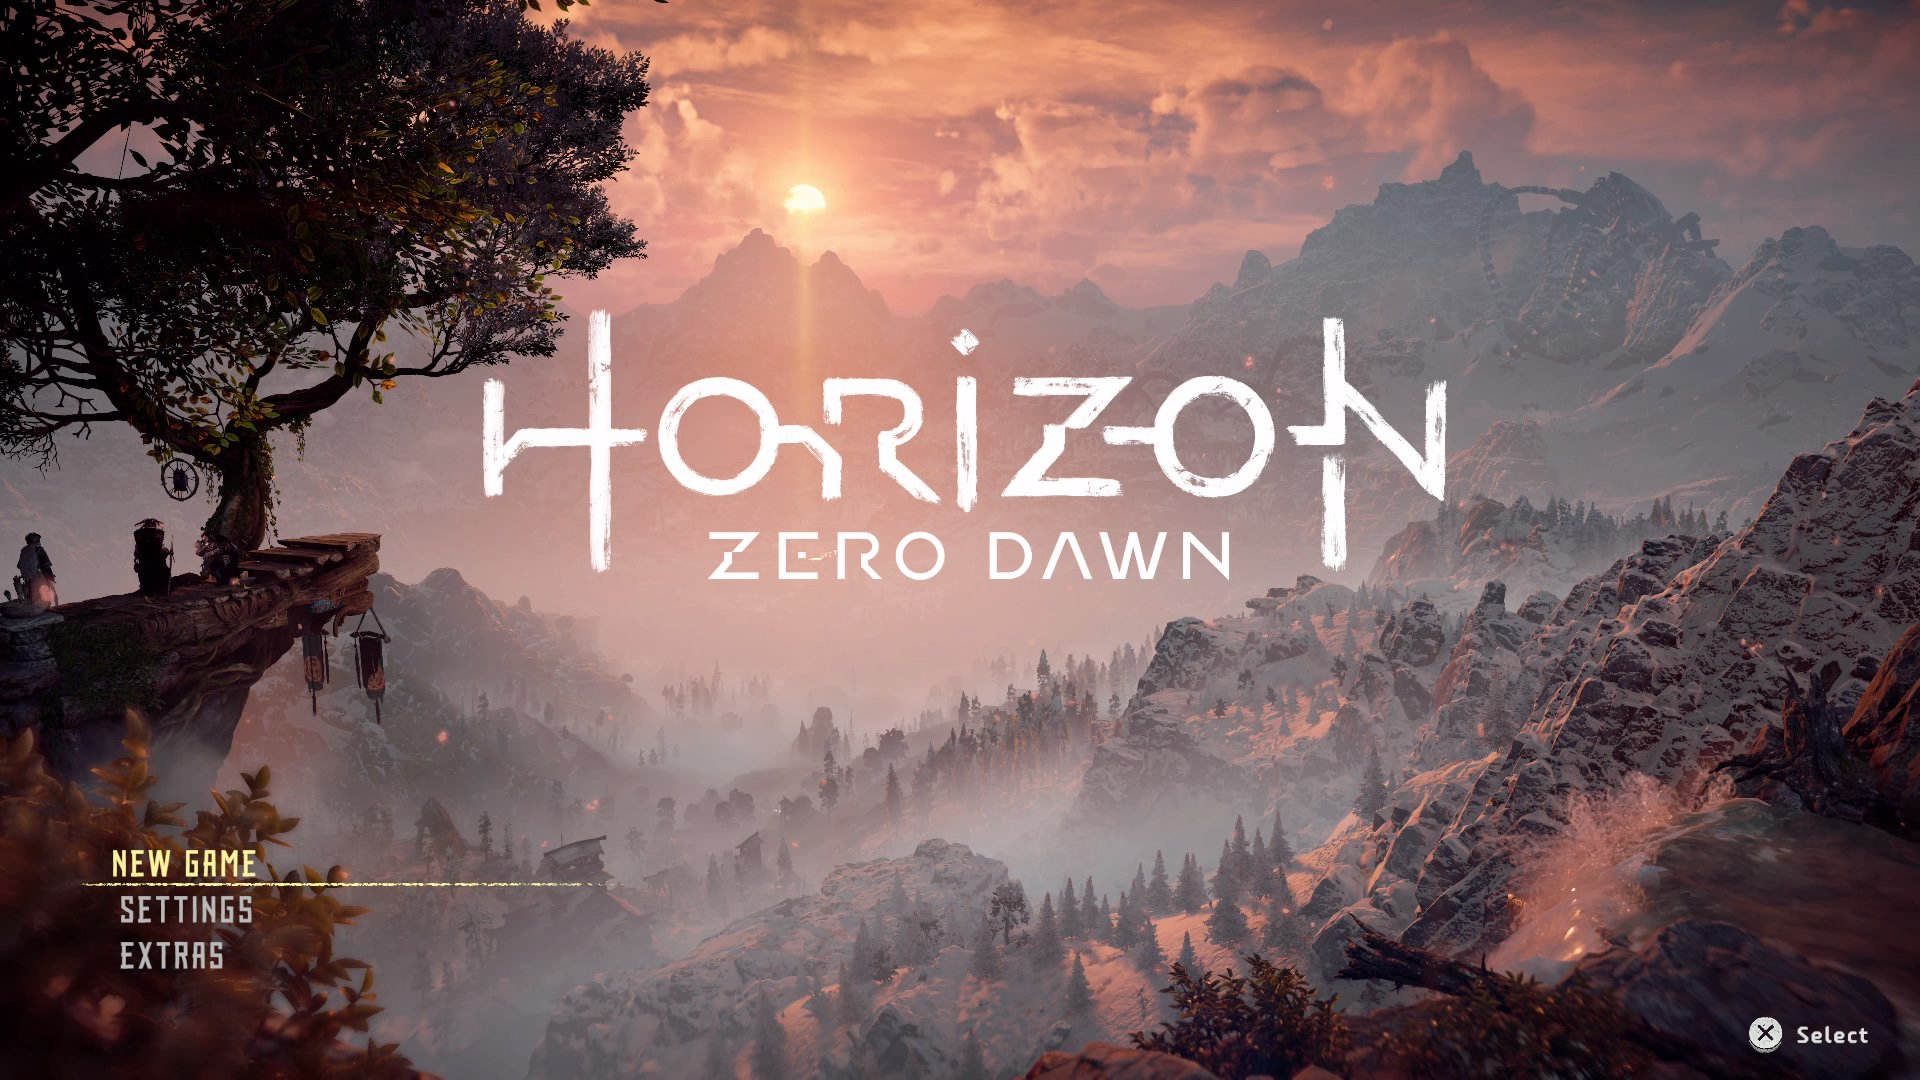 And so it begins... #HorizonZeroDawn #PS4share https://t.co/kp8rYk6jIj